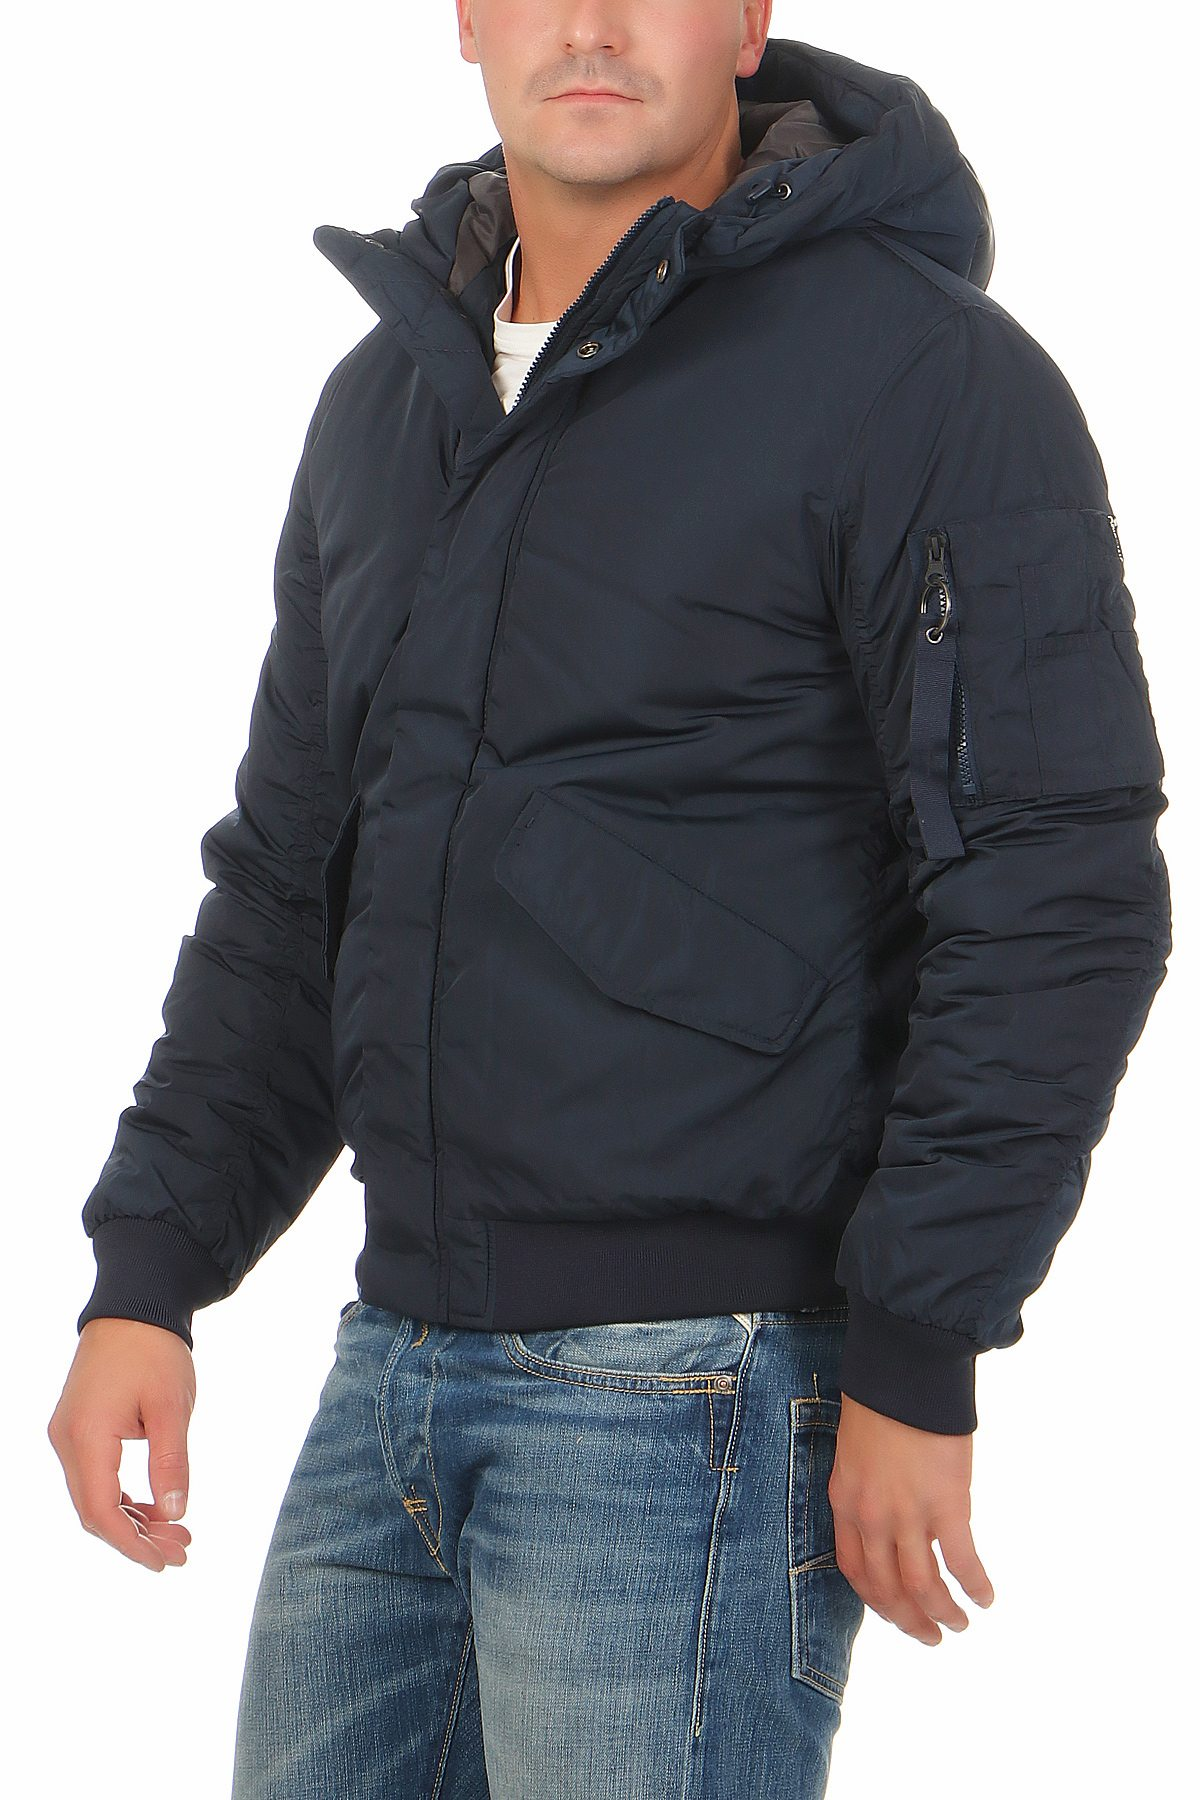 jack jones herren jacke jorryan bomber jacket jkt winterjacke ebay. Black Bedroom Furniture Sets. Home Design Ideas